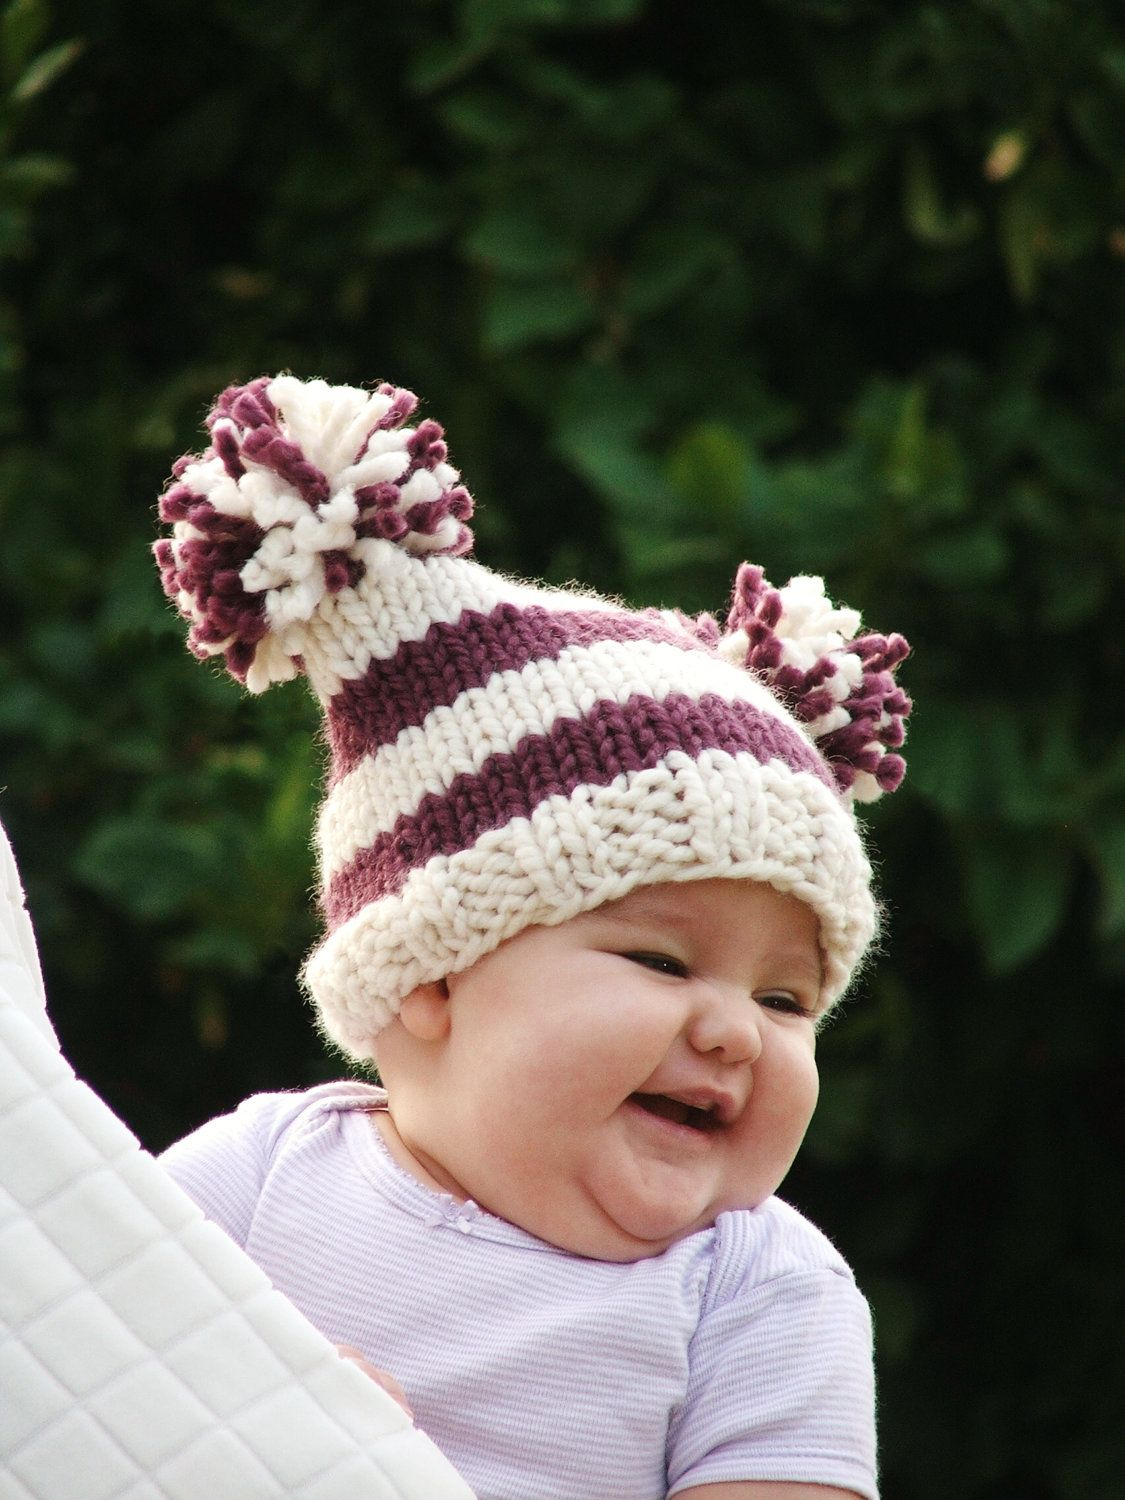 This adorable $5 baby hat pattern is perfect for keeping little ones ...